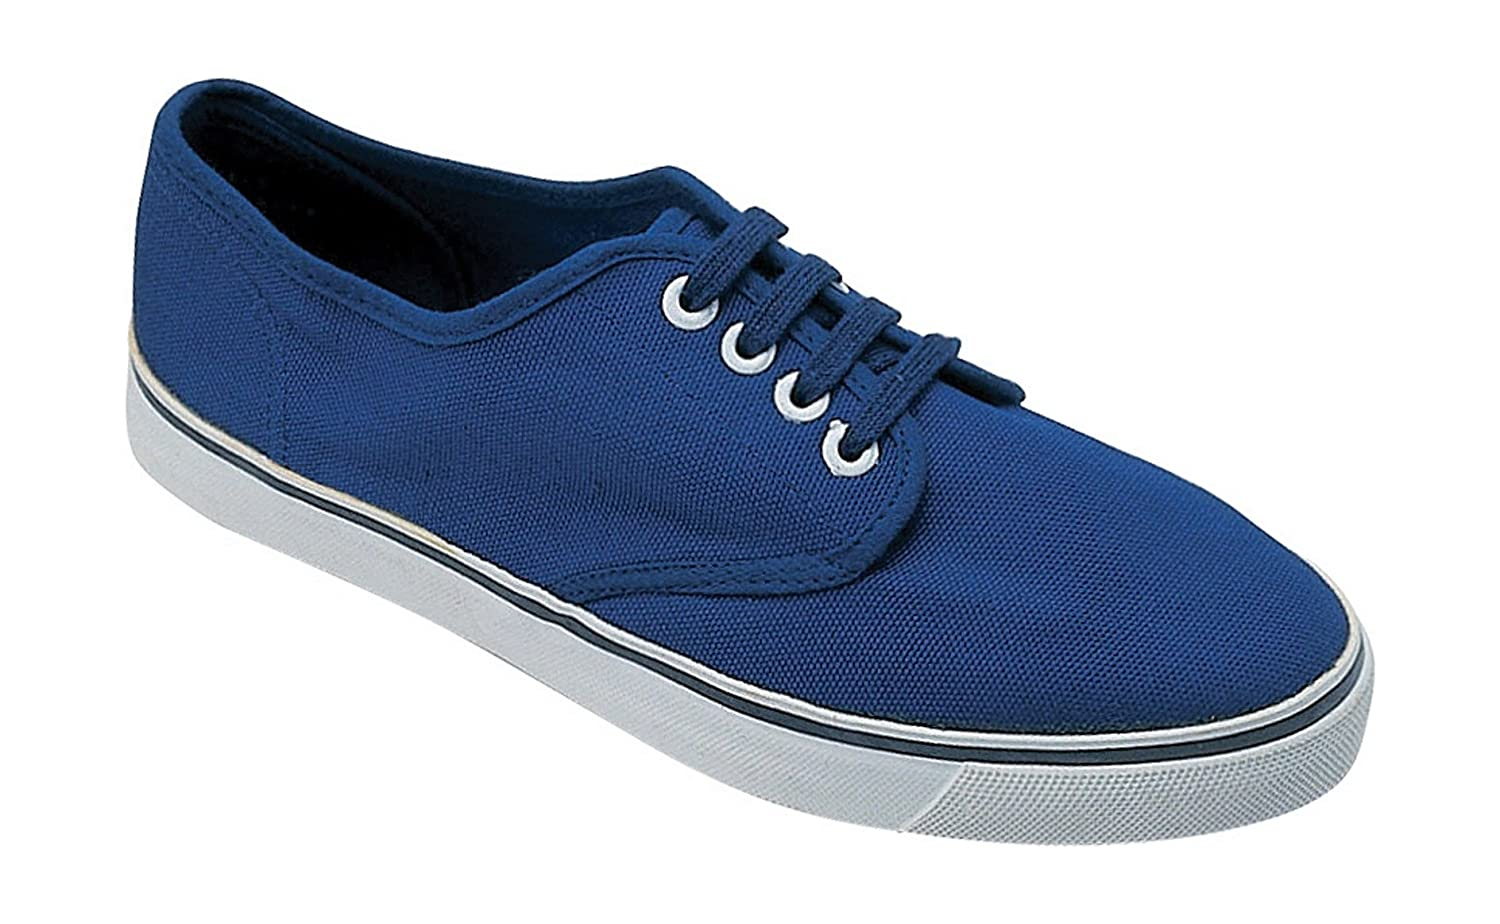 Mirak Lace-Up Textile Lined Mens Shoes - Navy - Size 42: Amazon.es: Zapatos y complementos